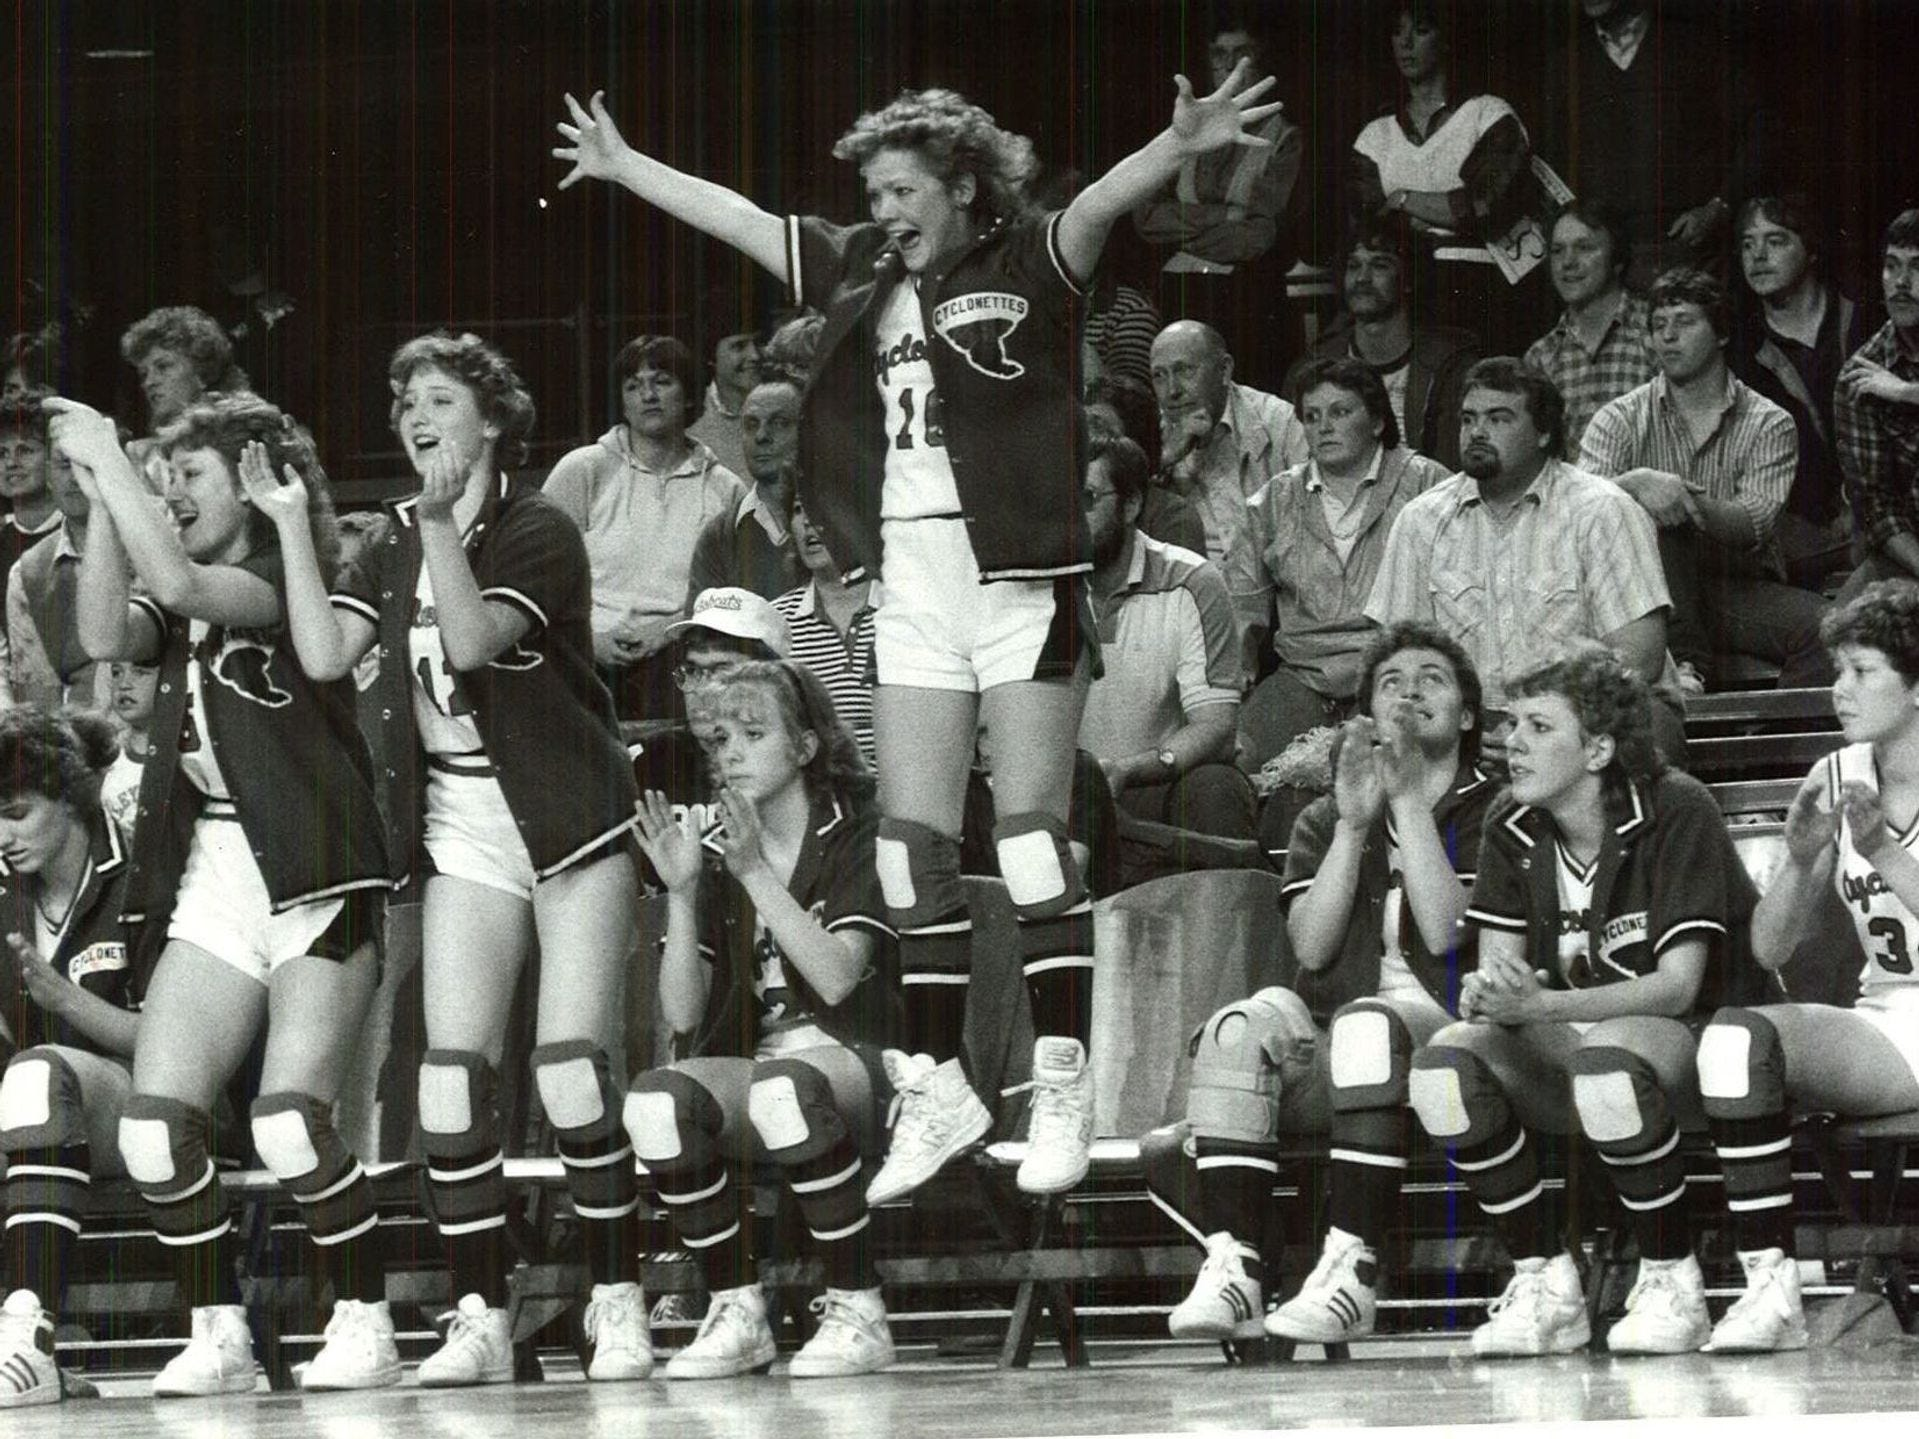 1985: HarlanÕs Teresa Wegner reacts to her teamÕs comeback in the final quarter of the game against Ackley-Geneva. Register file photo